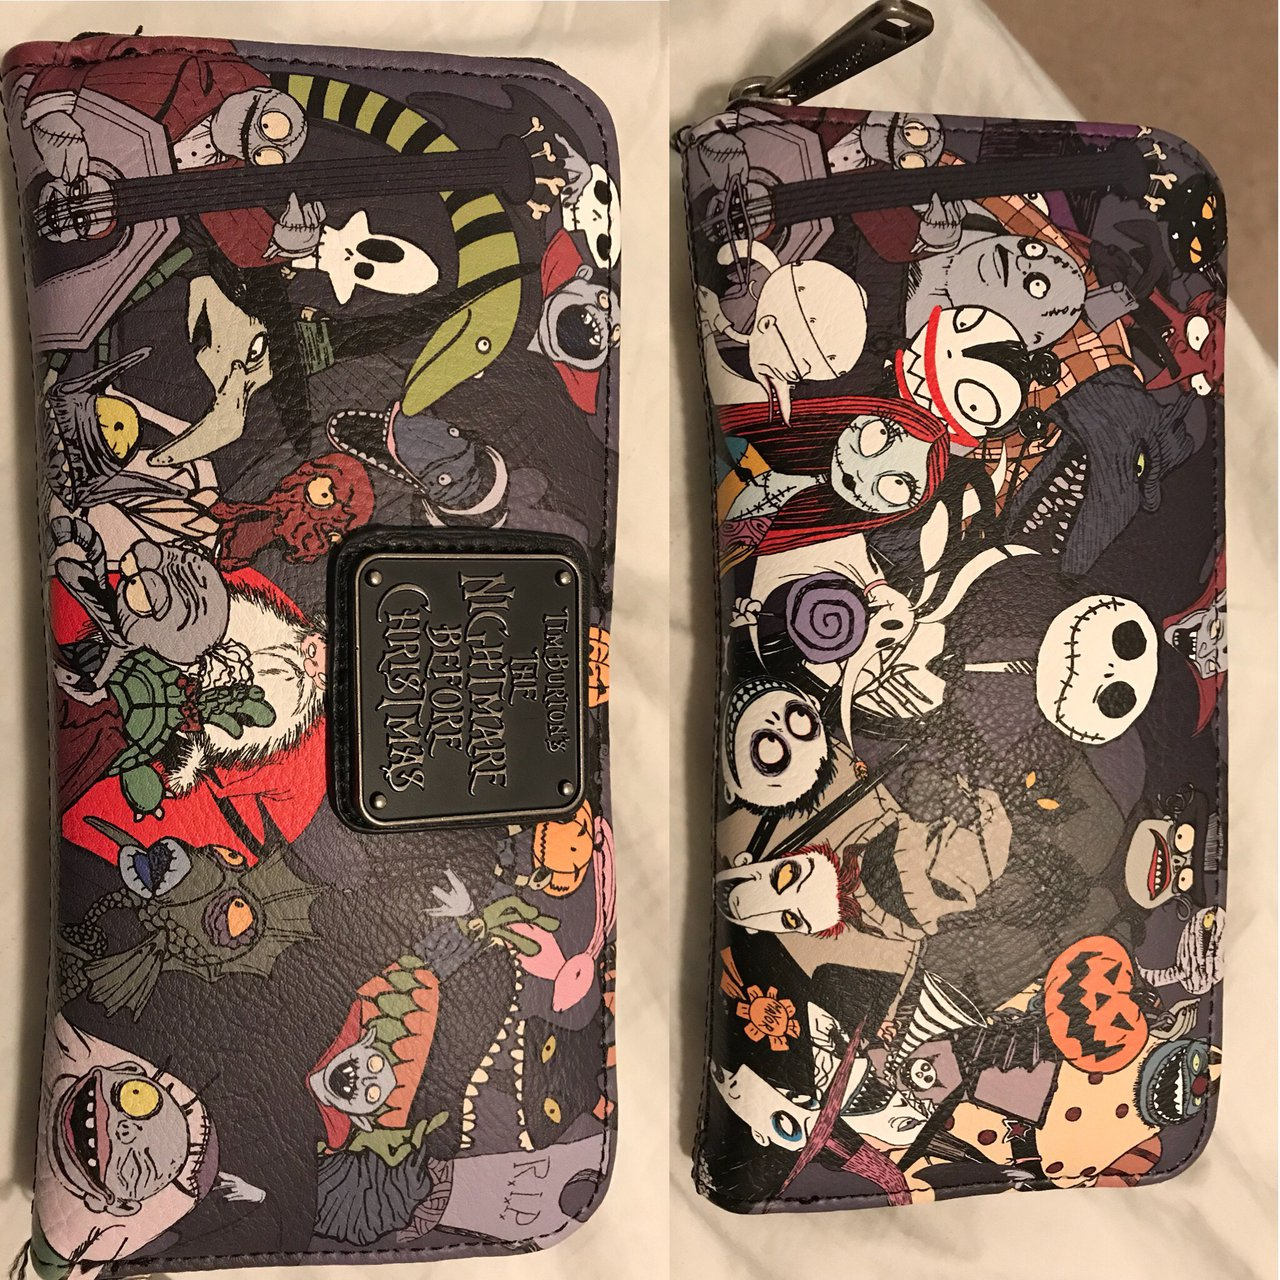 7312cbd65c1 ... new the nightmare before christmas wallet loungefly is the depop ...